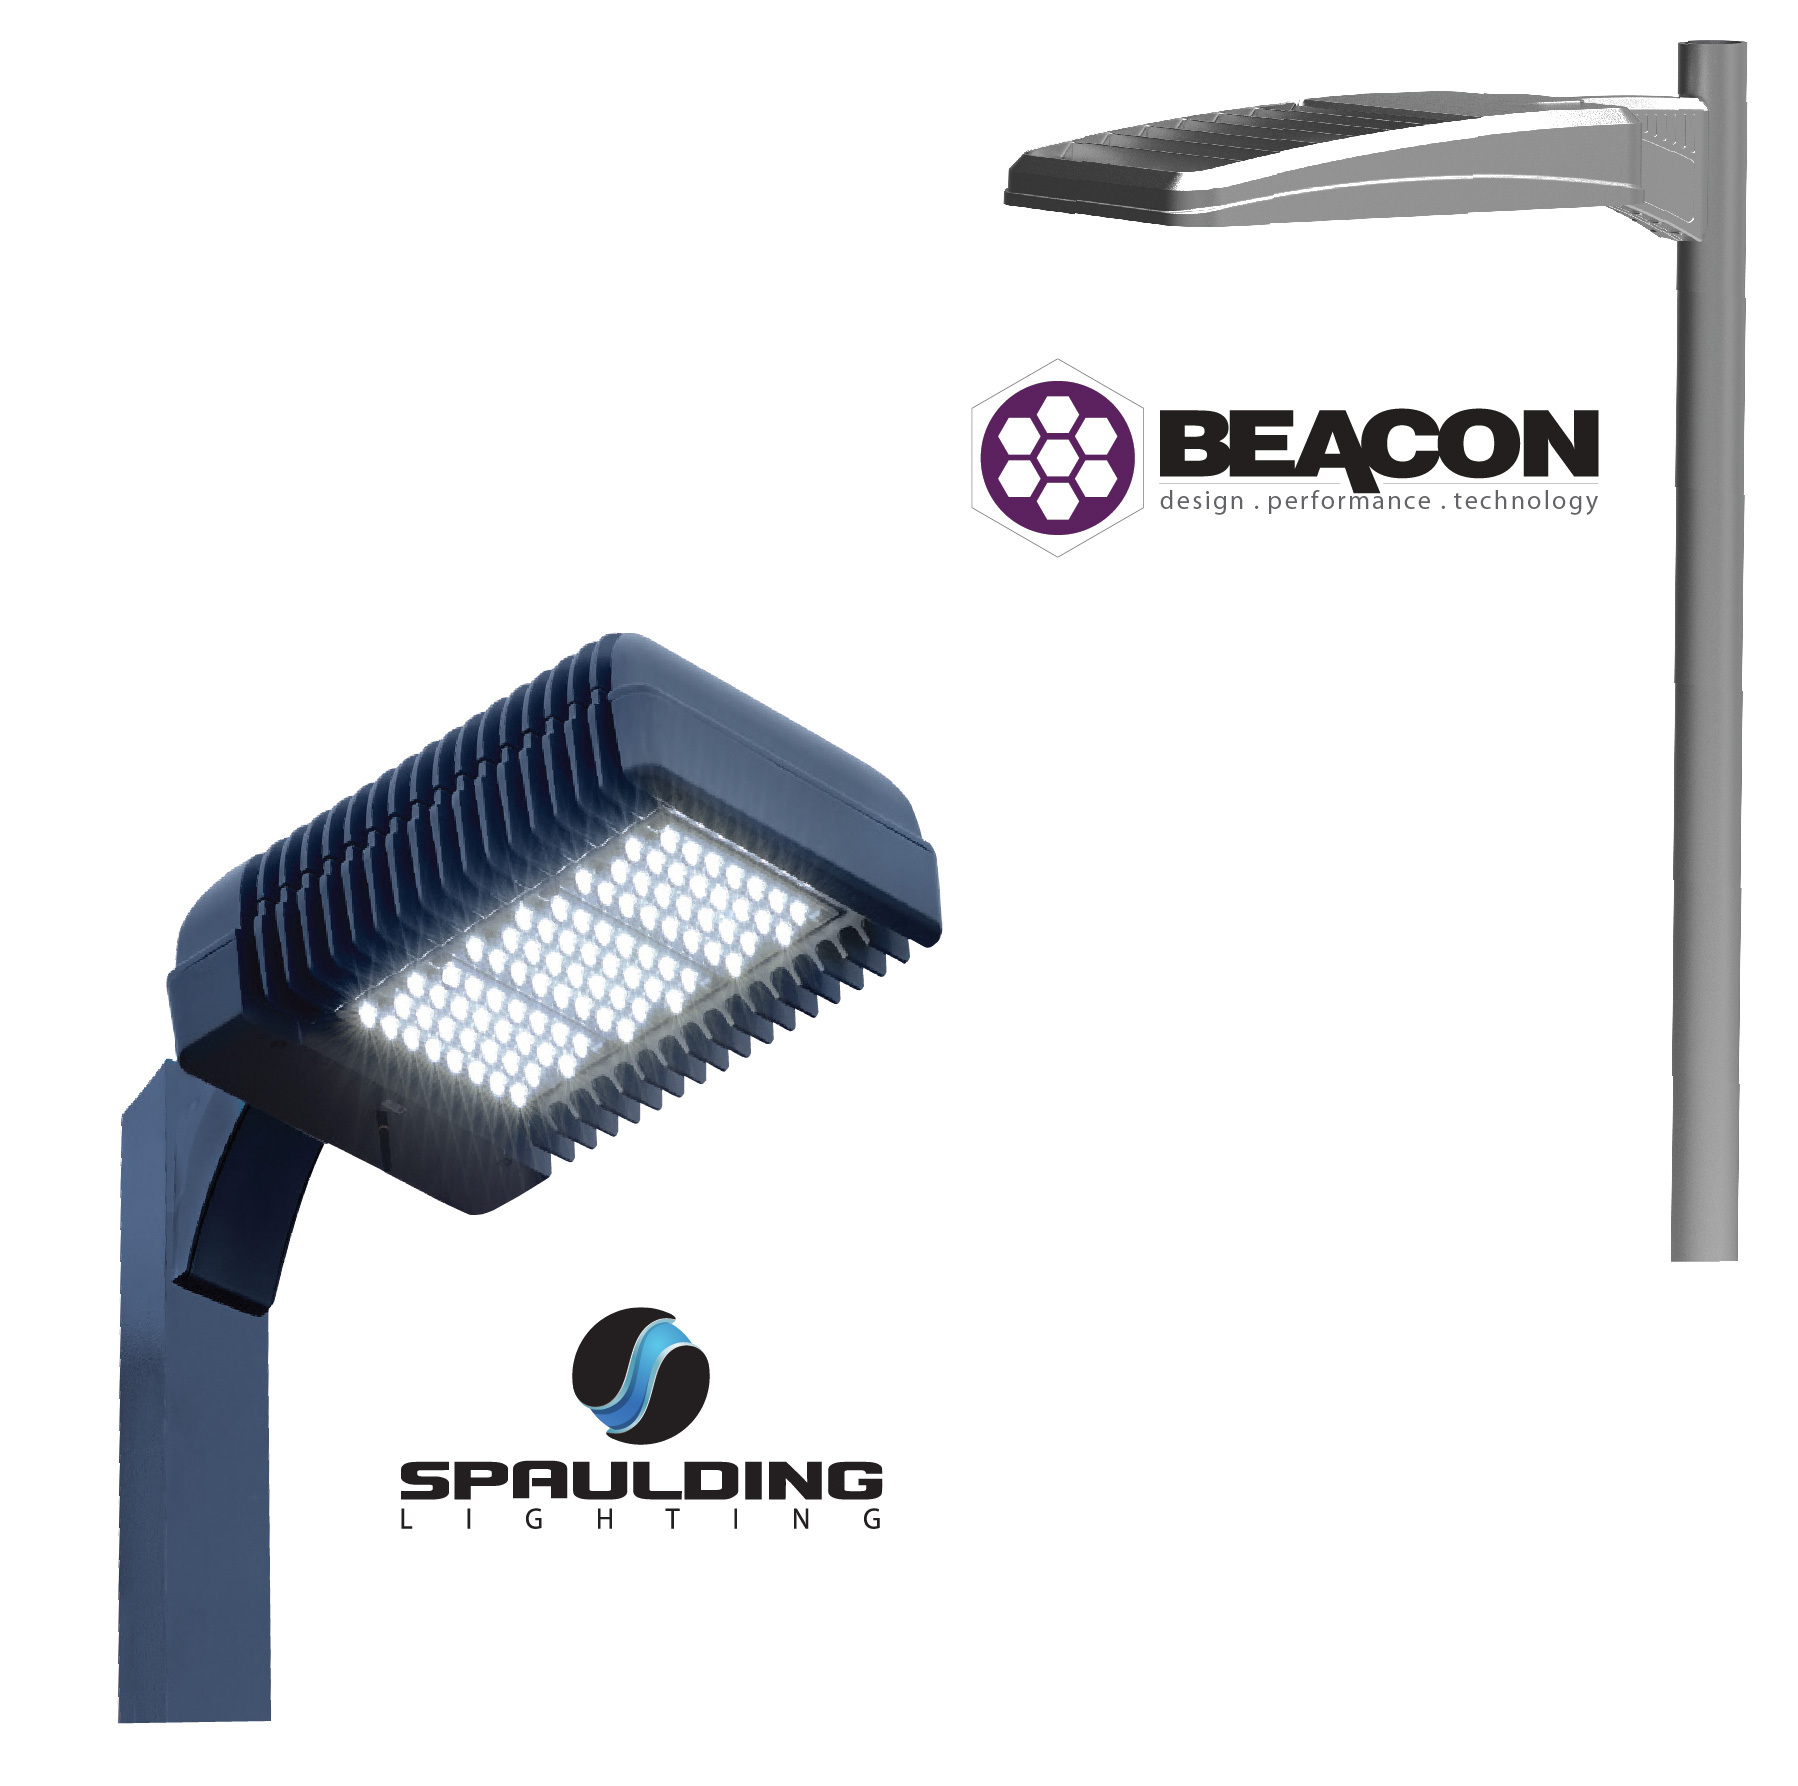 Hubbell lighting enhances outdoor lighting at dealerships with hubbell lighting enhances outdoor lighting at dealerships with custom optic led luminaires business wire mozeypictures Images